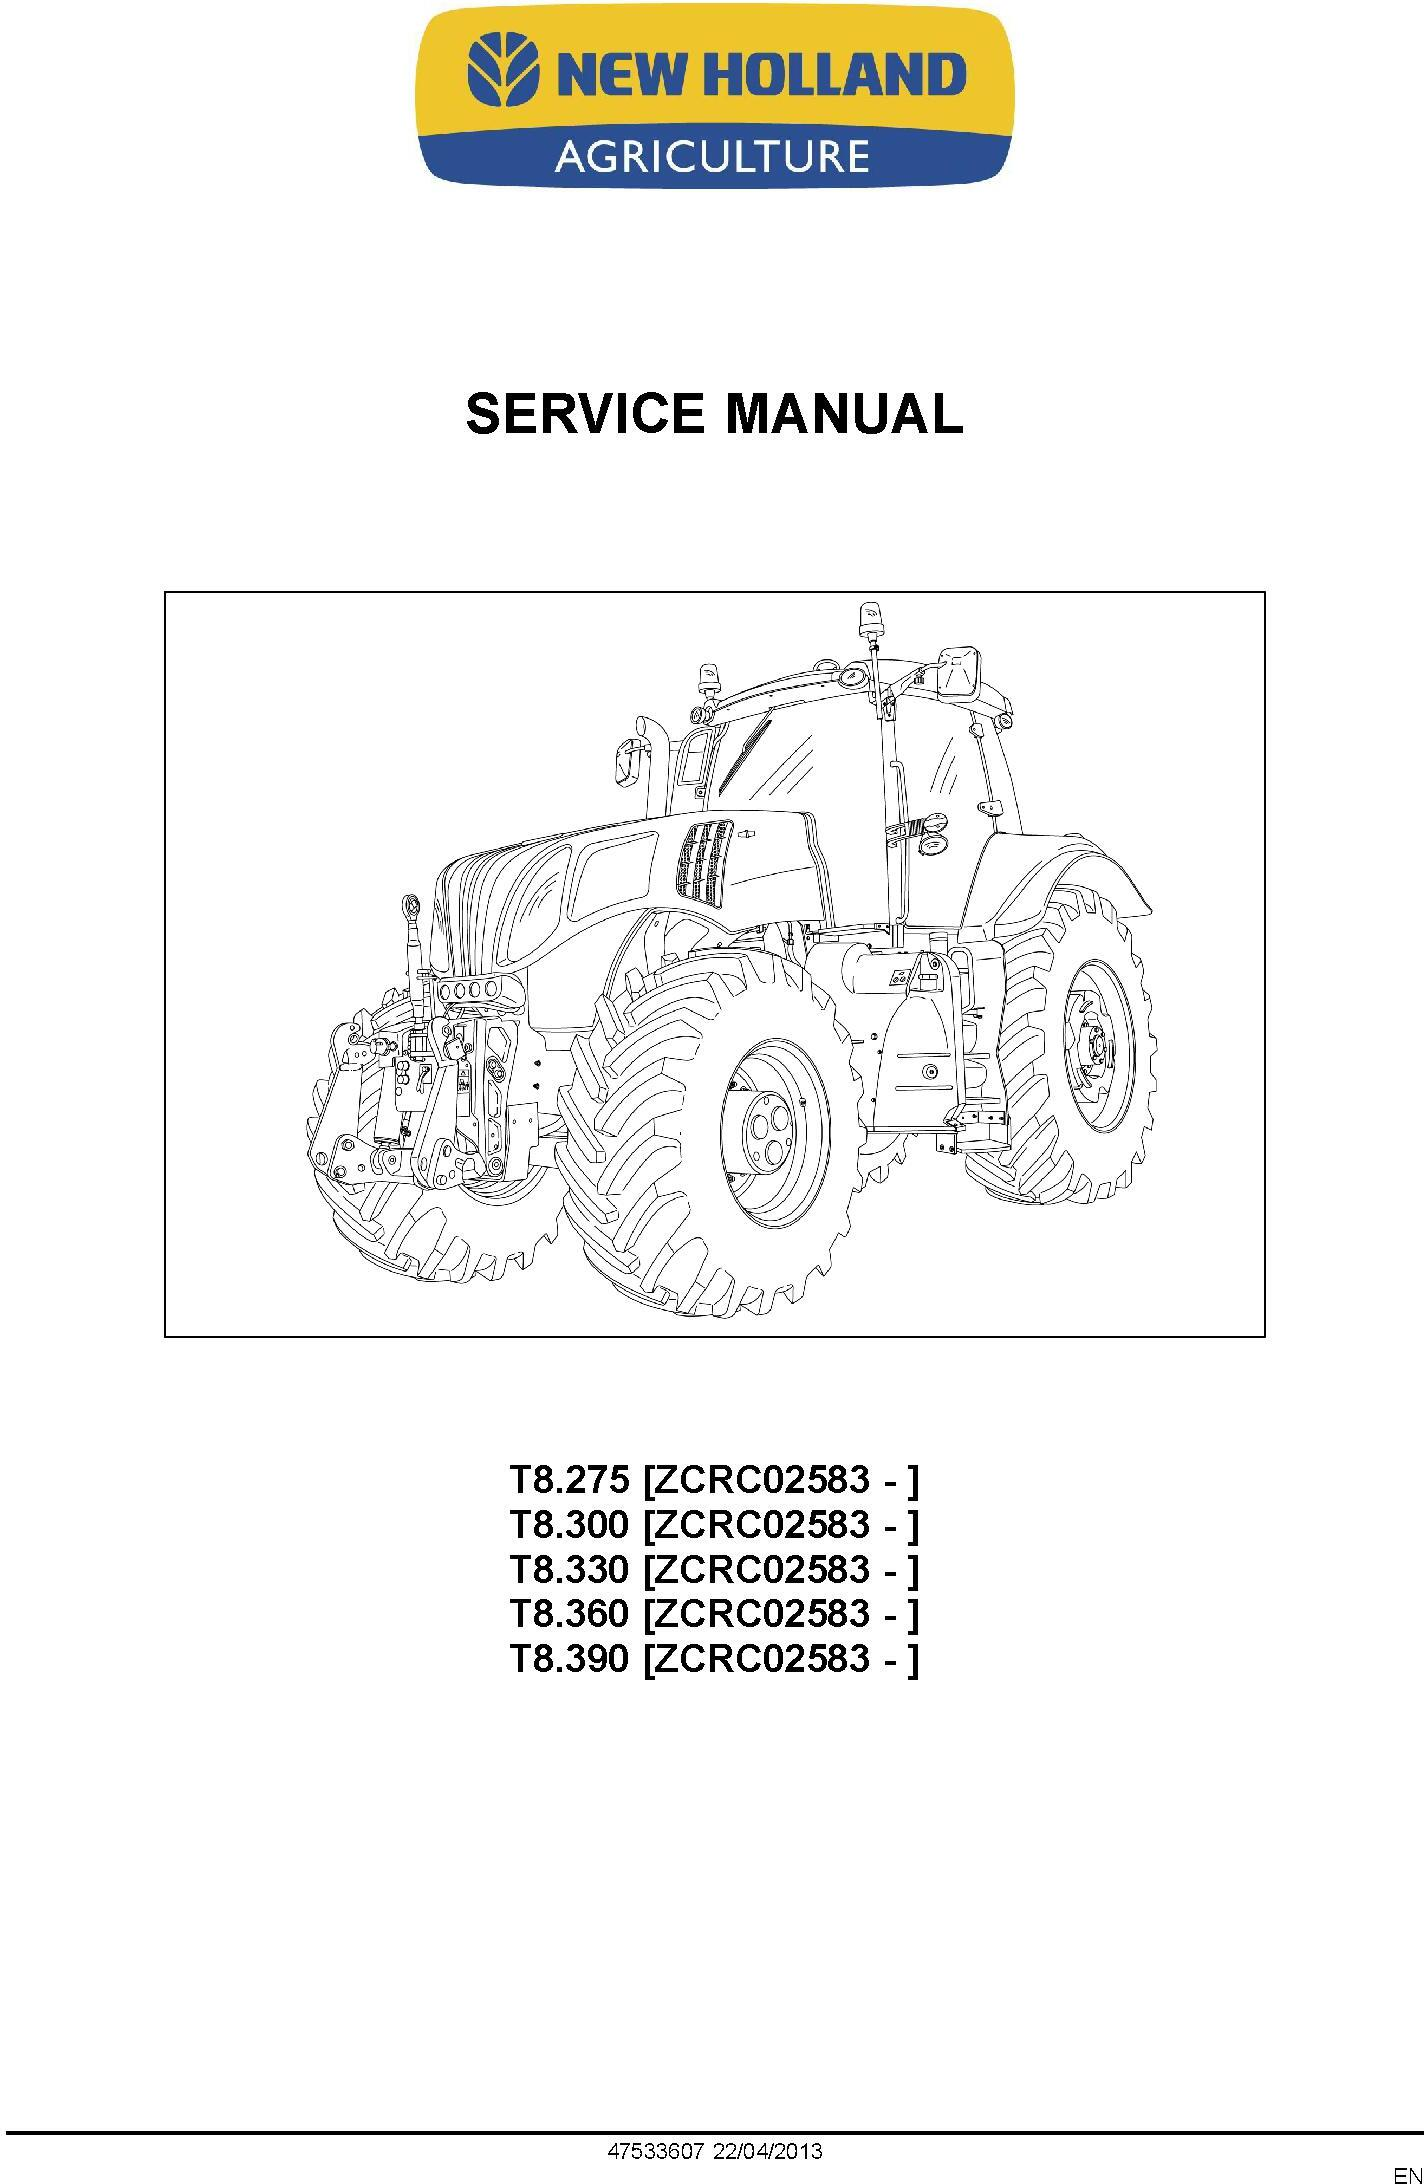 New Holland T8.275, T8.300, T8.330, T8.360, T8.390 (PST) Tractor (PIN ZCRC02583-) Service Manual - 1